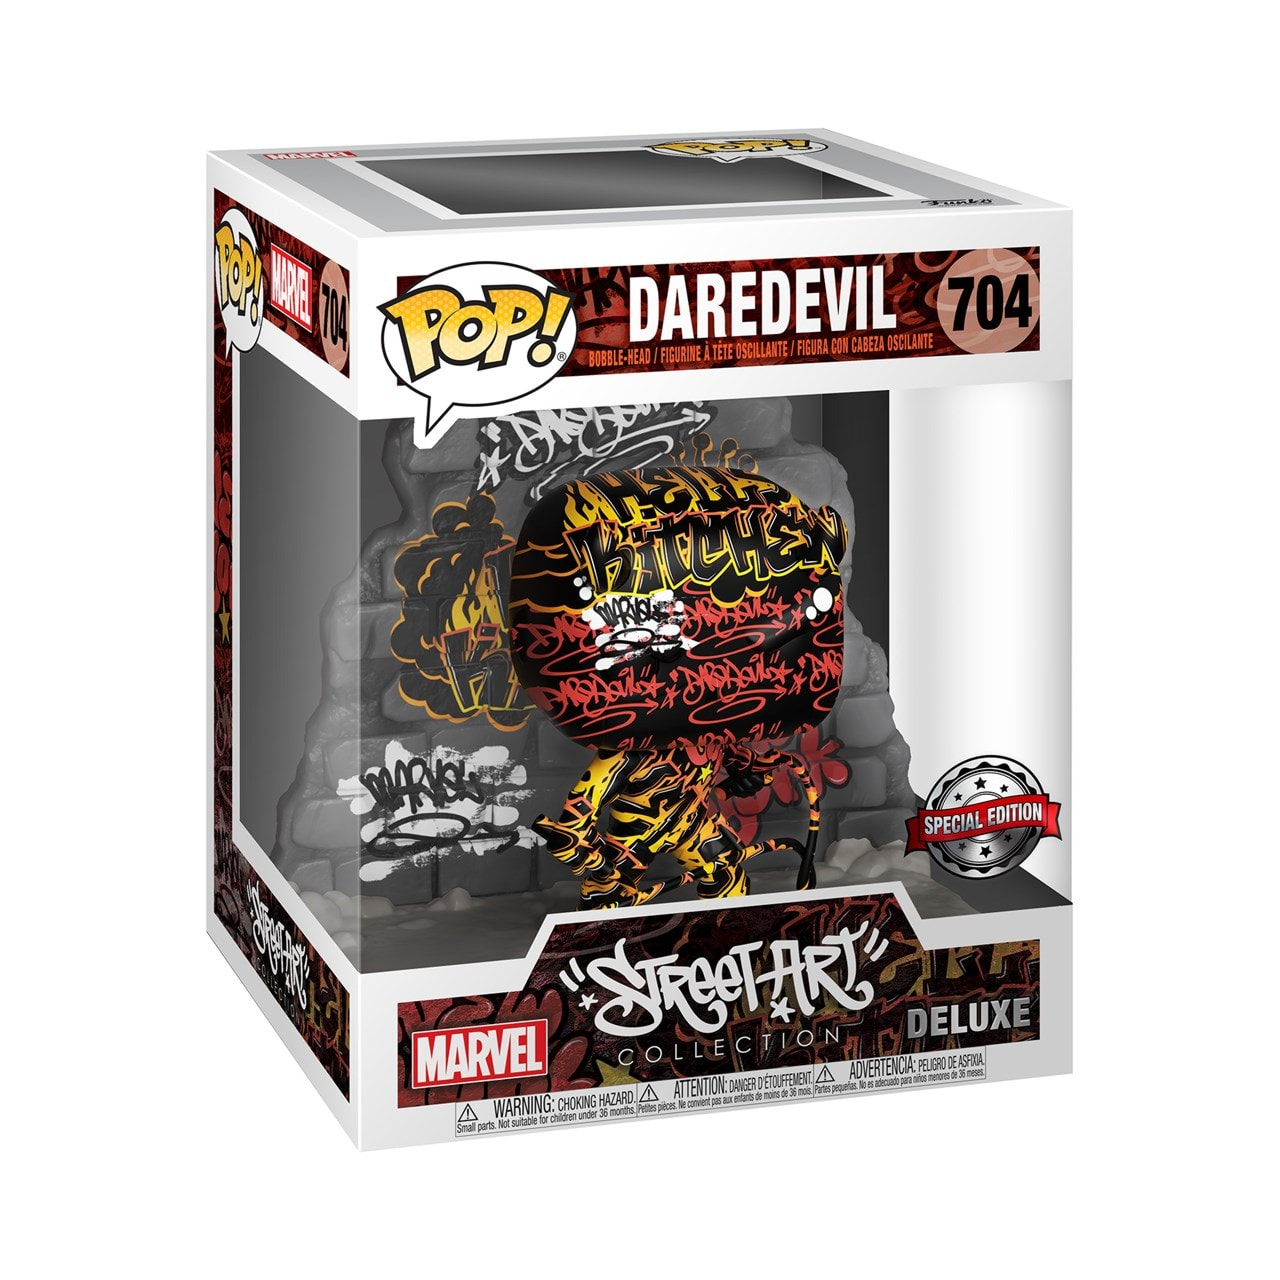 Daredevil Graffiti Deco (704) Marvel Deluxe Street Art Collection (hmv Exclusive) Pop Vinyl - 2